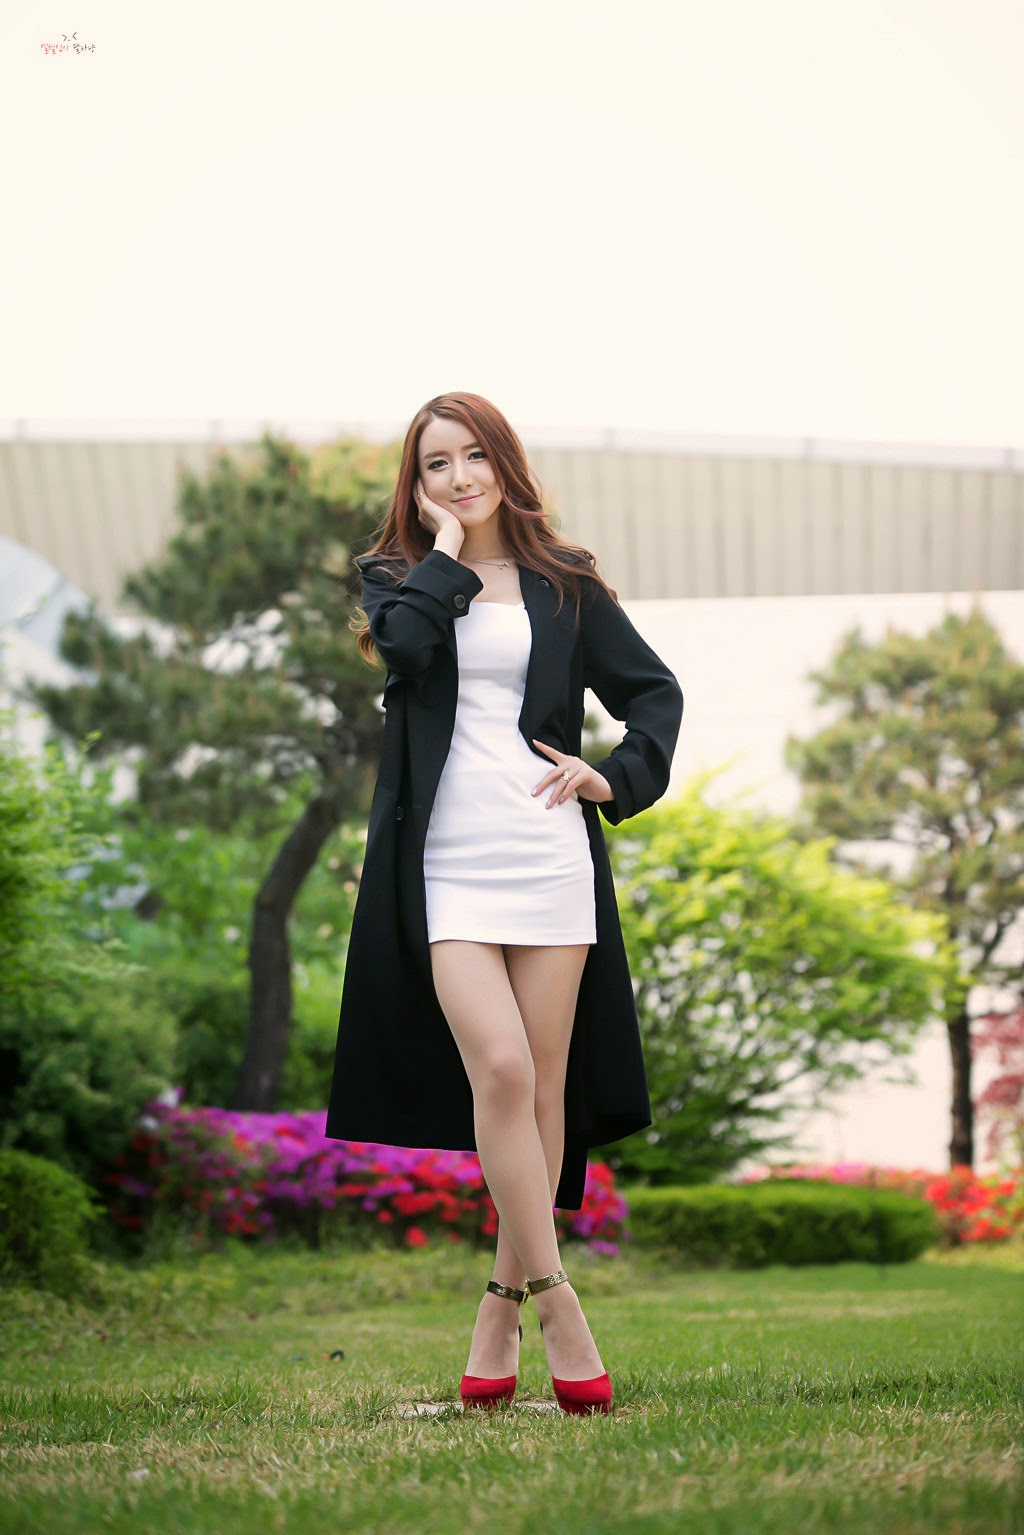 3 Lee Yeon Yoon - P&I 2014 - very cute asian girl-girlcute4u.blogspot.com